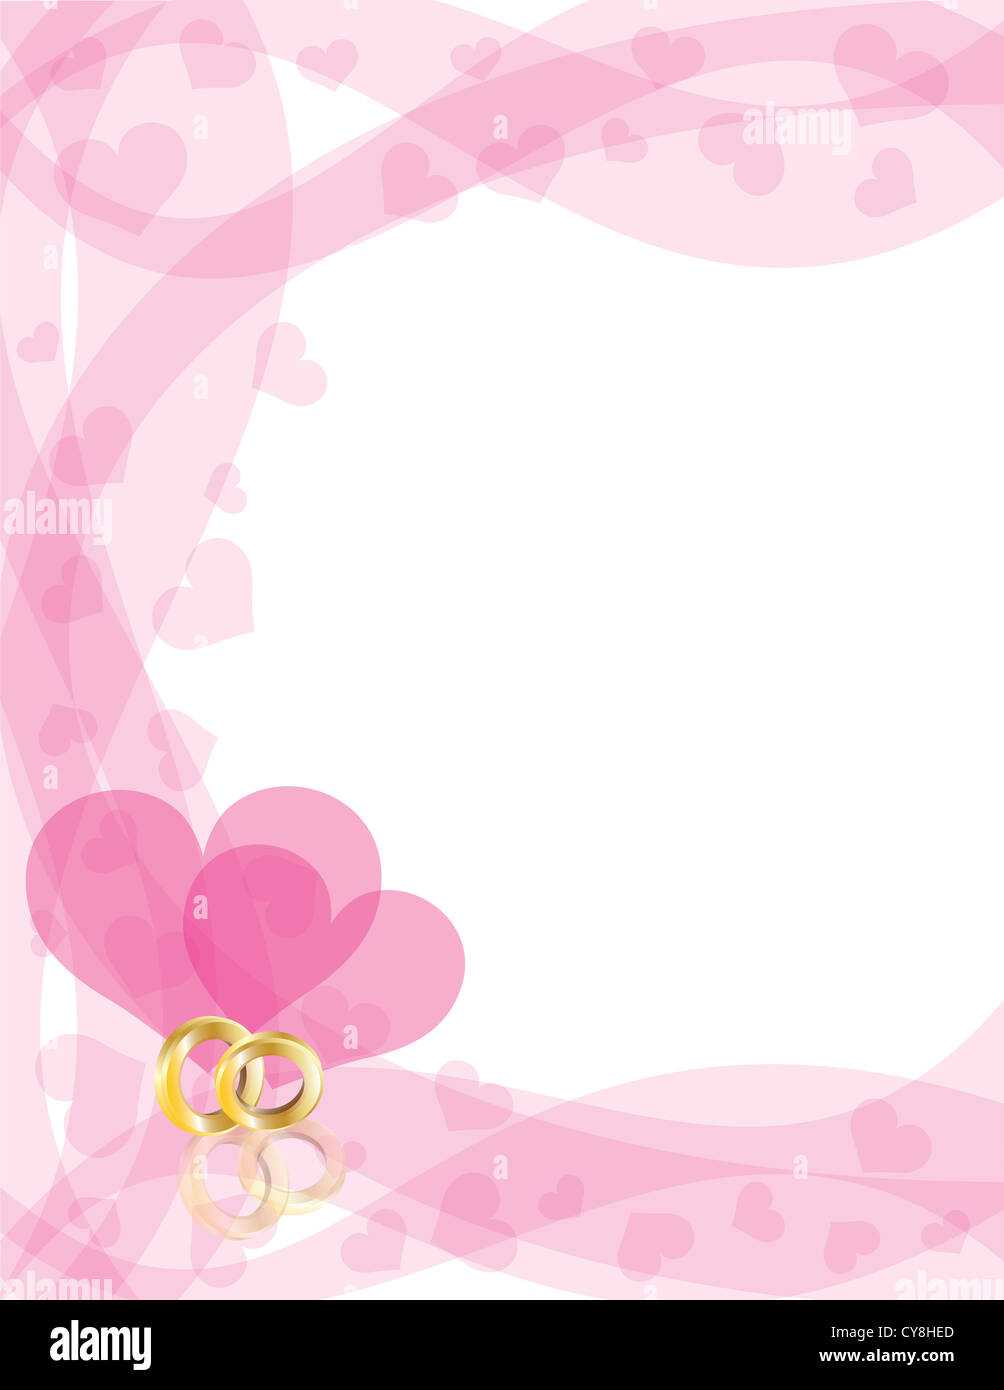 Wedding Rings Gold Band on Swirls Border with Flying Hearts Border ...